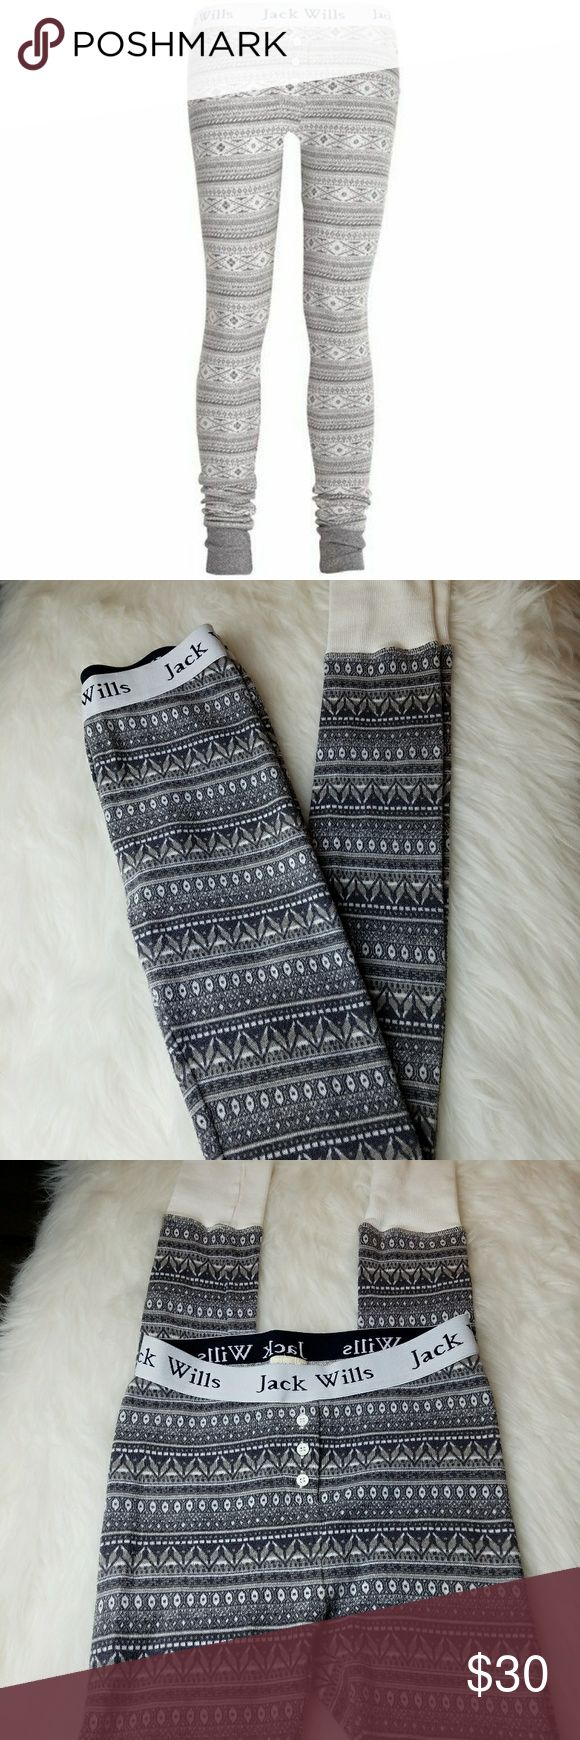 "JACK WILLS Nordic Print Knit Leggings JACK WILLS Nordic Print leggings in soft fine gauge sweater knit with elastic waistband / ankle cuffs and button fly accent; Cotton / Spandex knit; Great for lounging or with boots and a sweater! 12"" waist measured flat 9"" Rise 31"" inseam; Excellent condition! Jack Wills Pants Leggings"